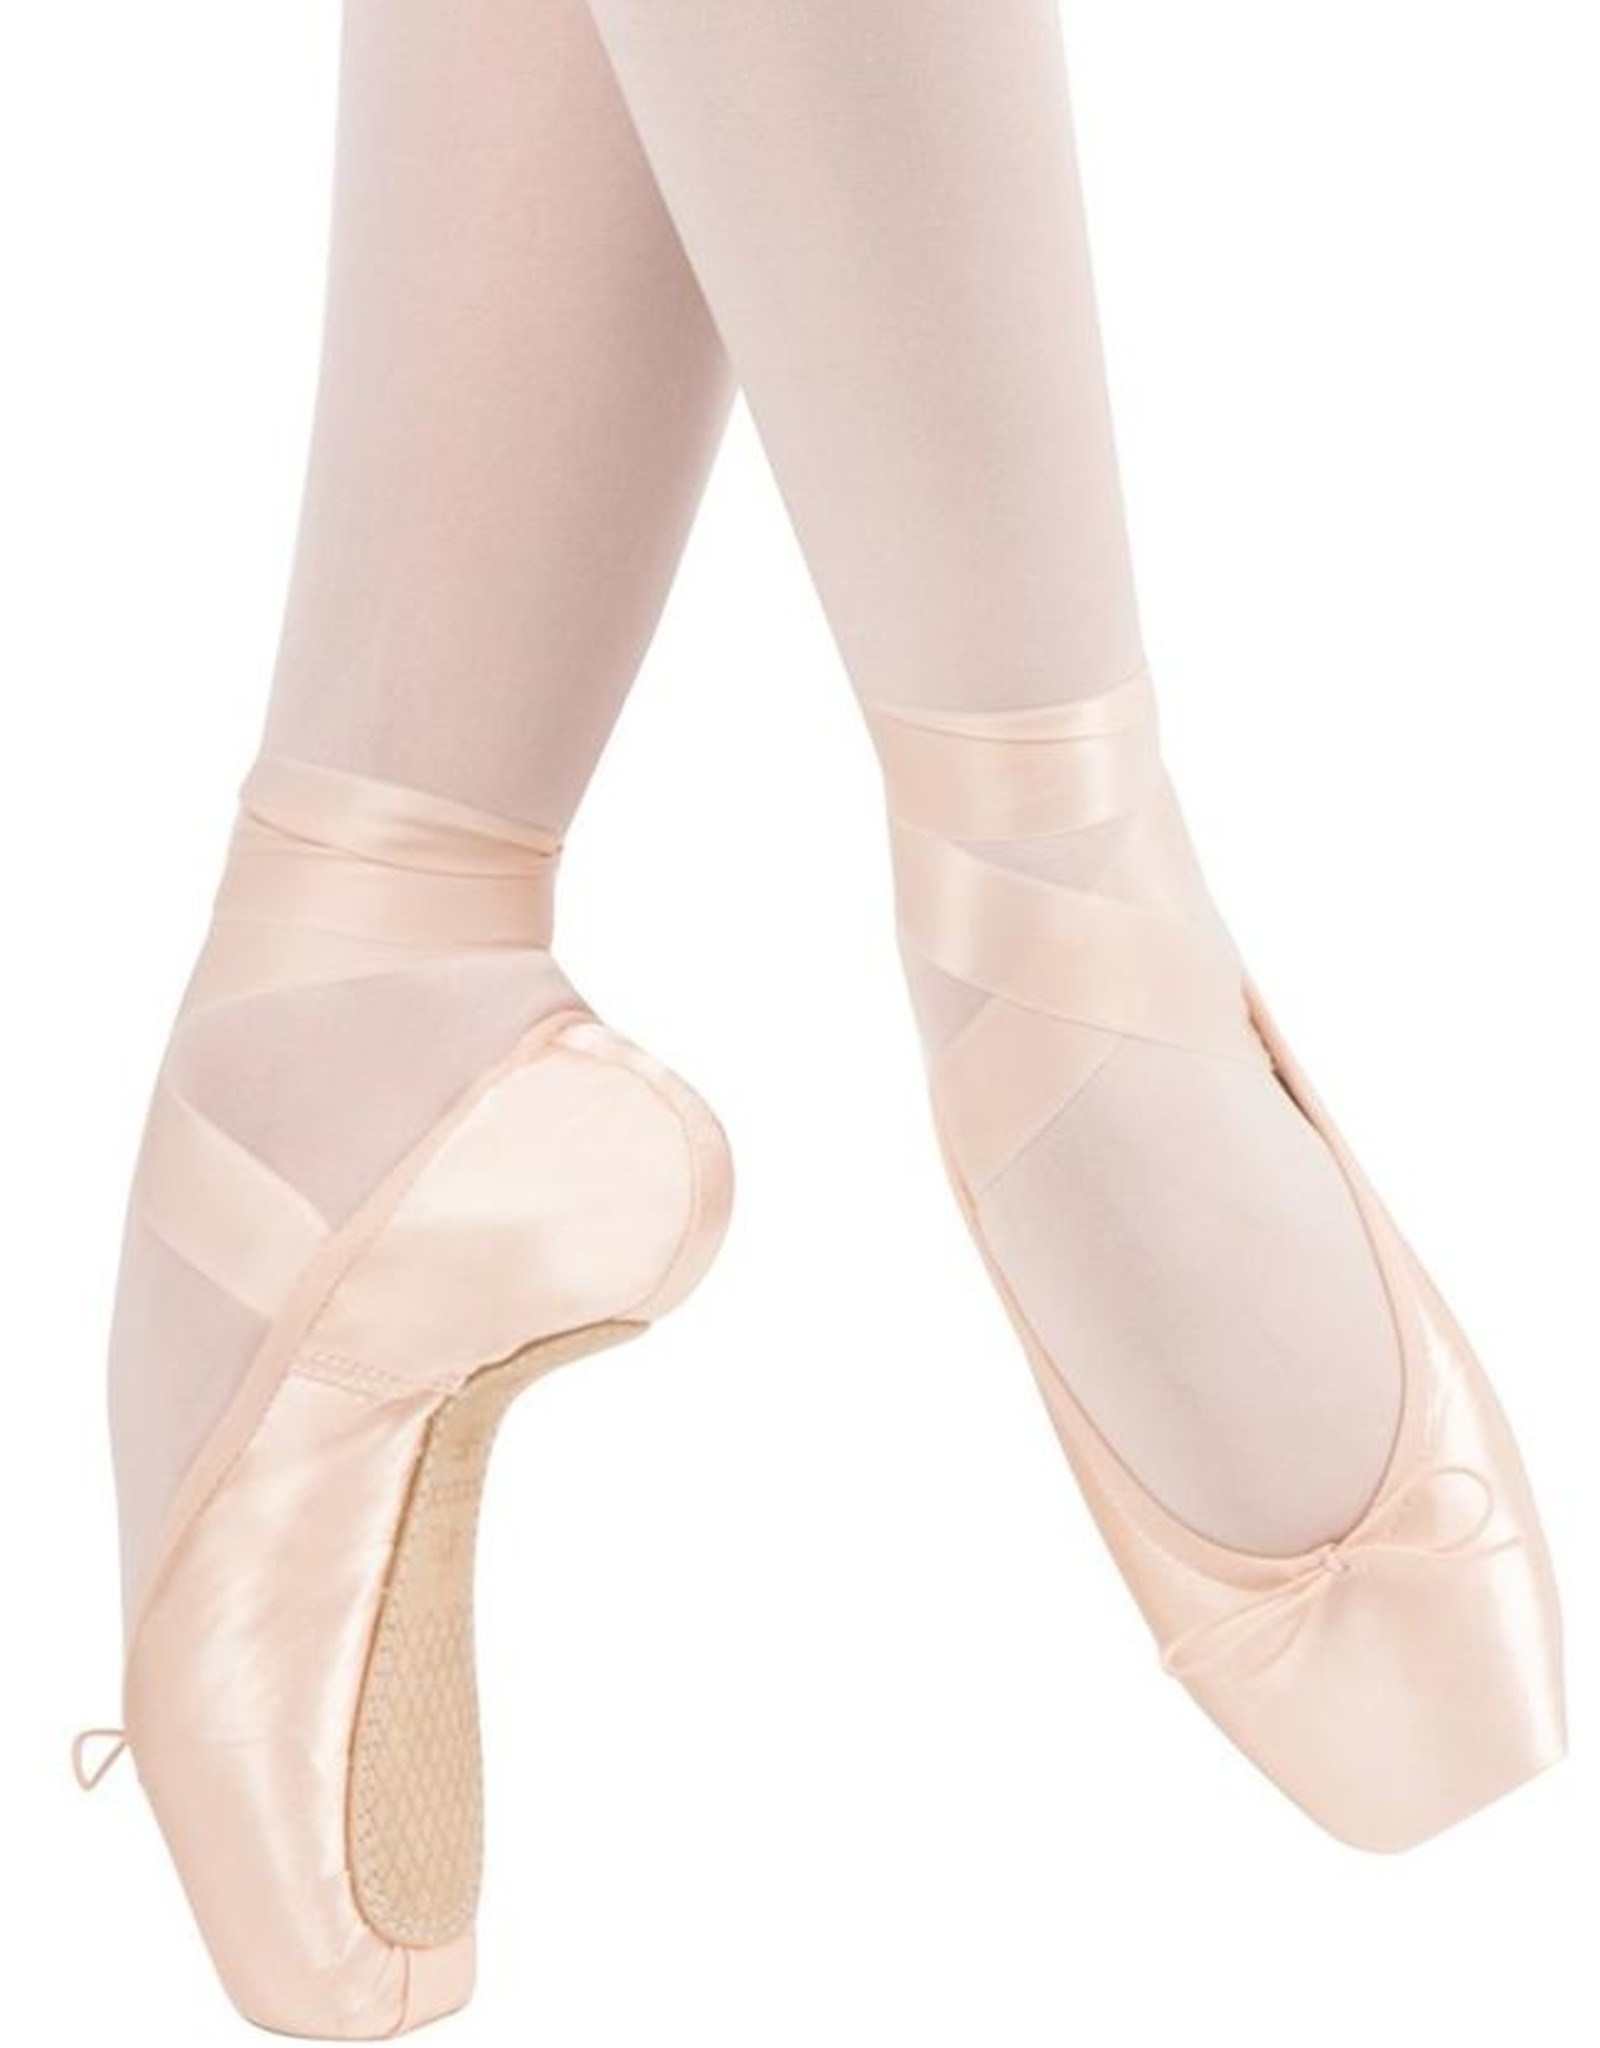 GRISHKO DREAMPOINTE 2007 PRE-ARCHED POINTE SHOES (0527/1)